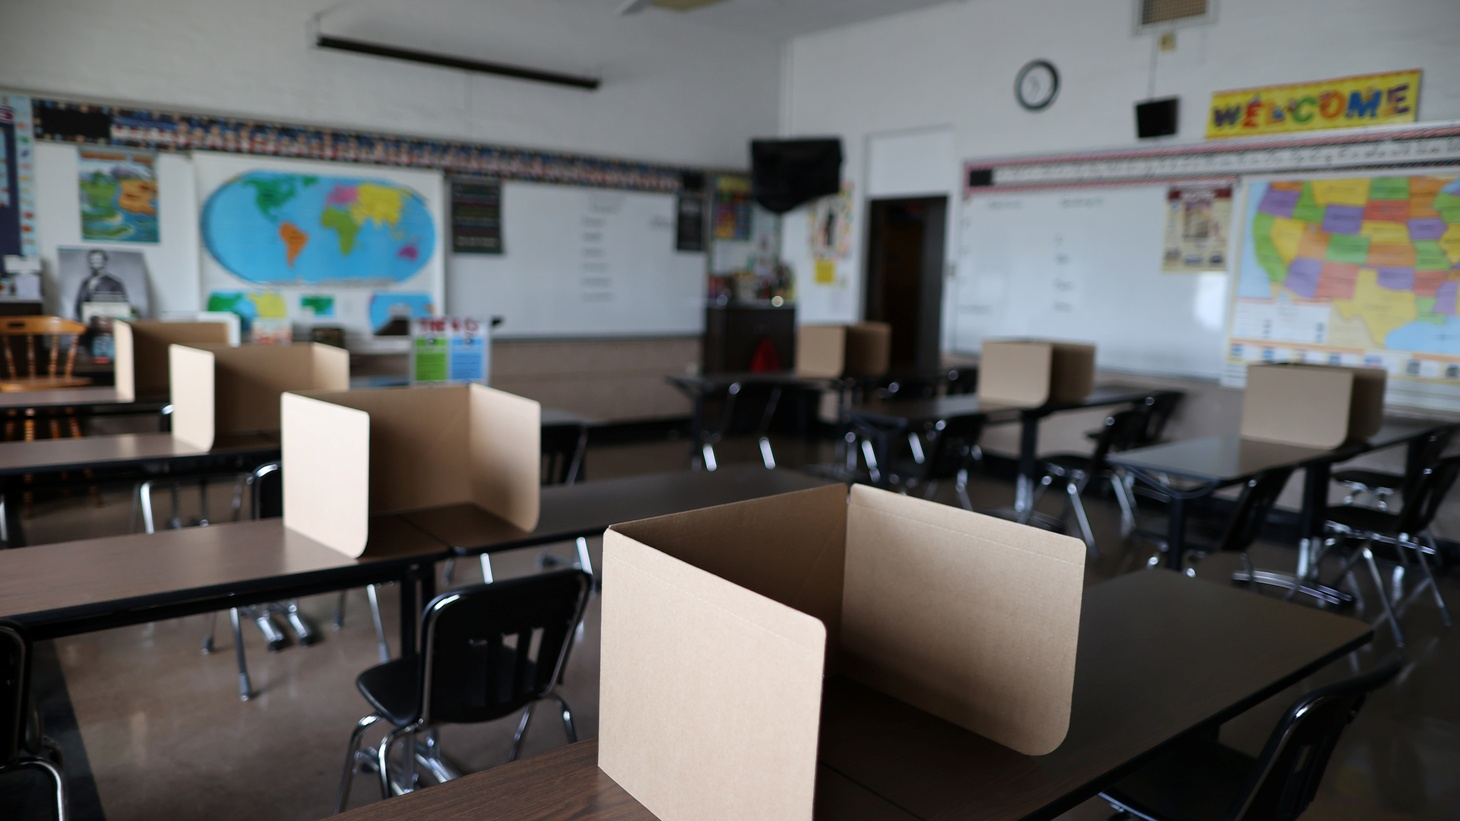 Social distancing dividers for students are seen in a classroom at St. Benedict School, amid the outbreak of the coronavirus disease (COVID-19) in Montebello, near Los Angeles, California, U.S., July 14, 2020.